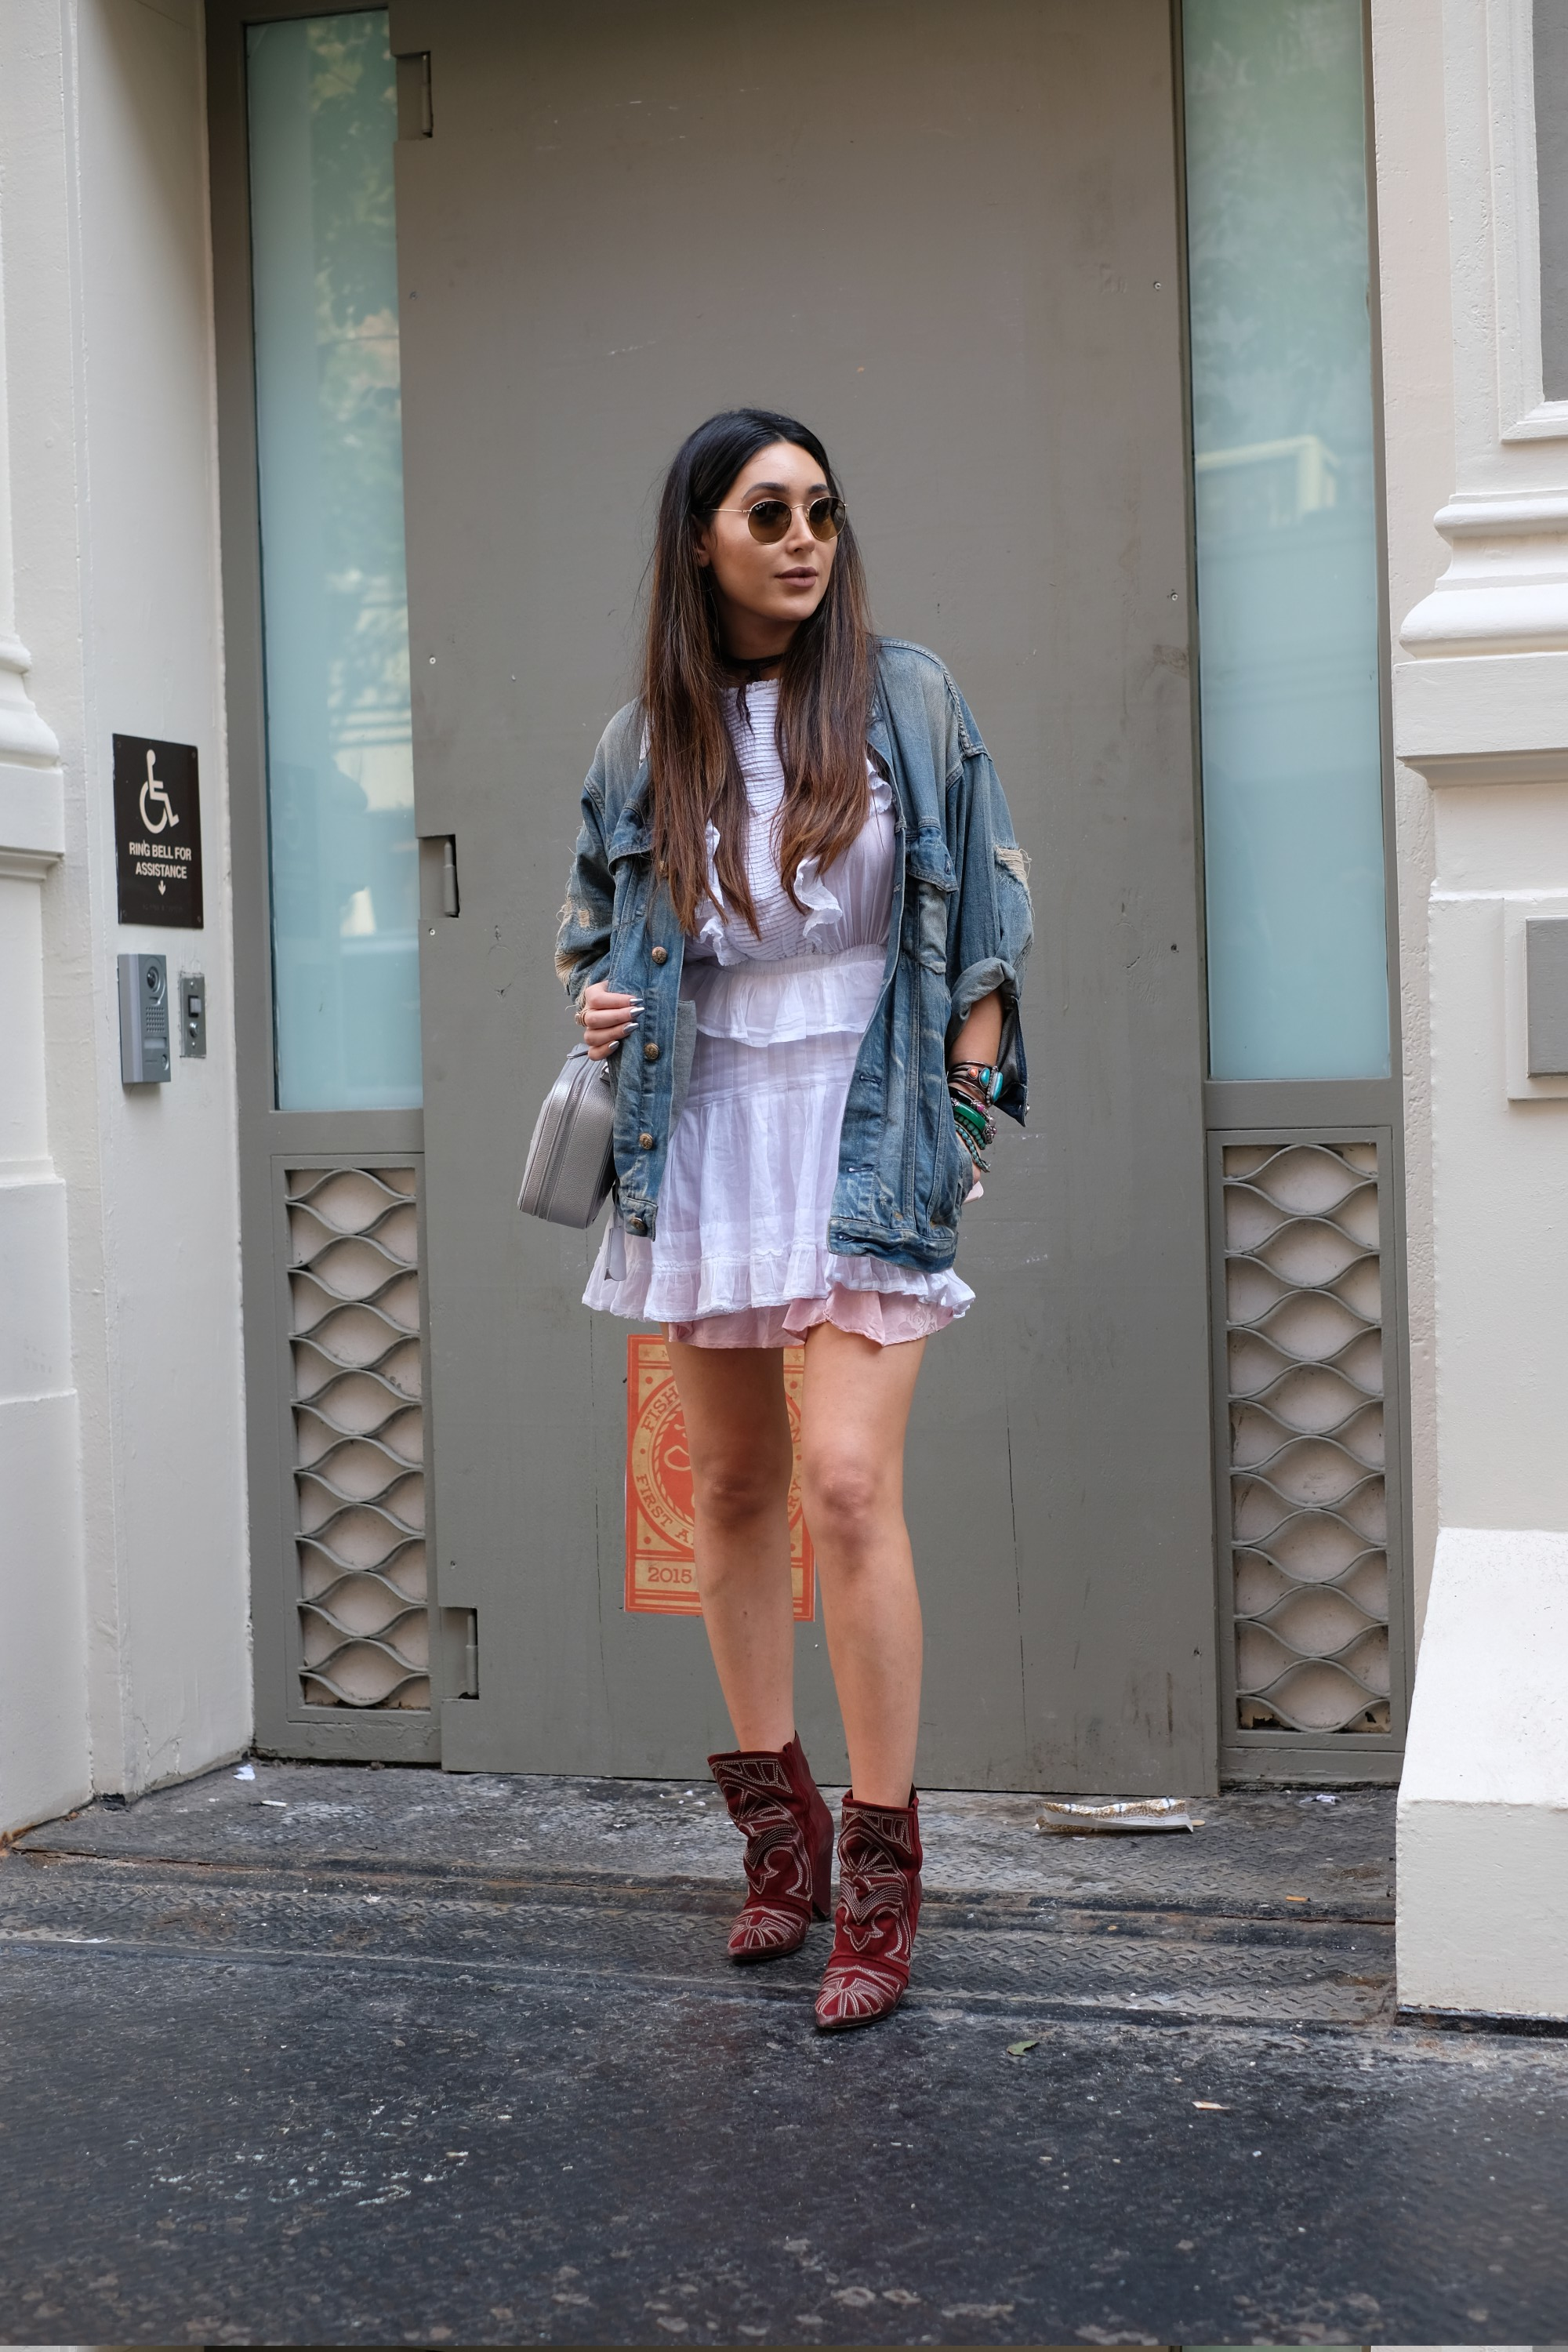 frilly skirt and denim jacket